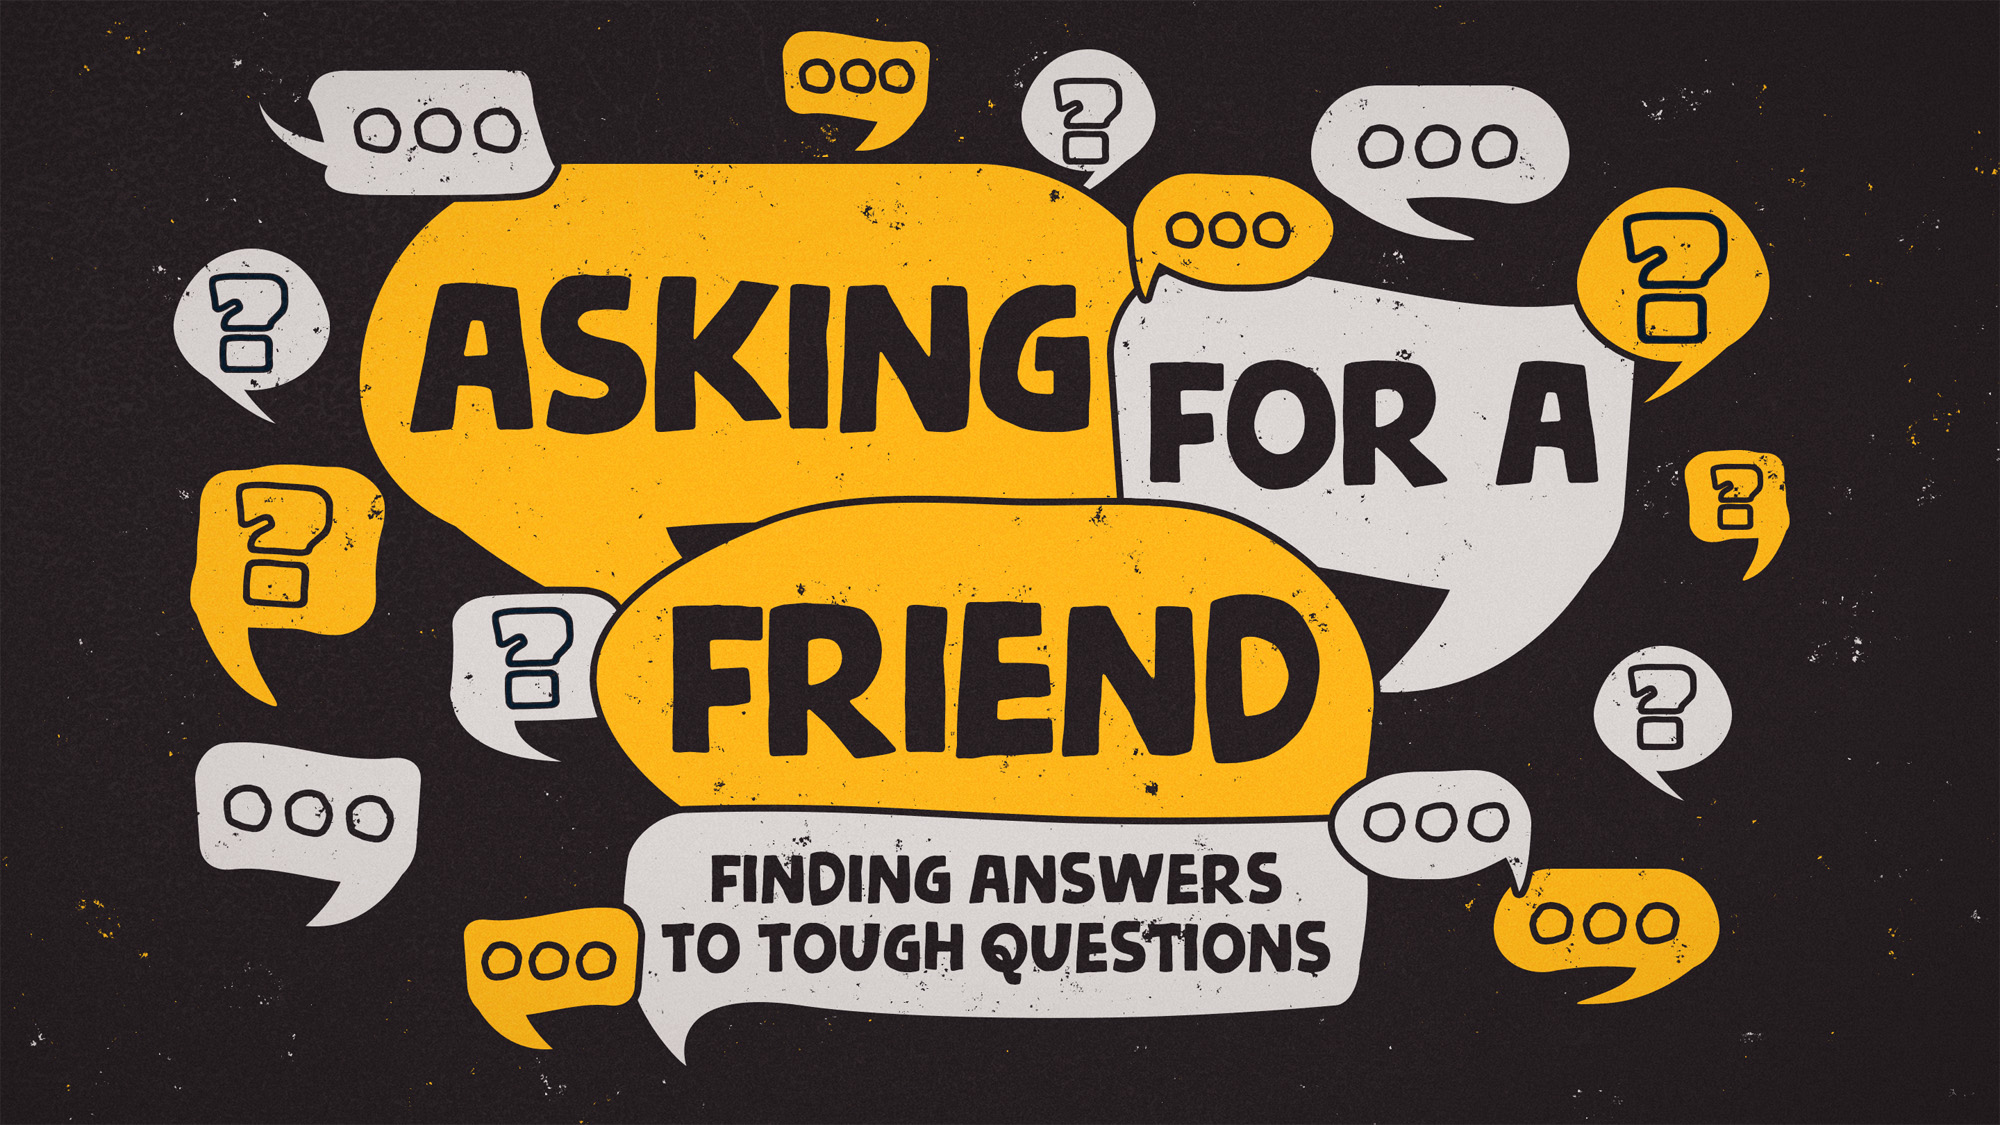 asking_for_a_friend-title-1-Wide 16x9.jpg